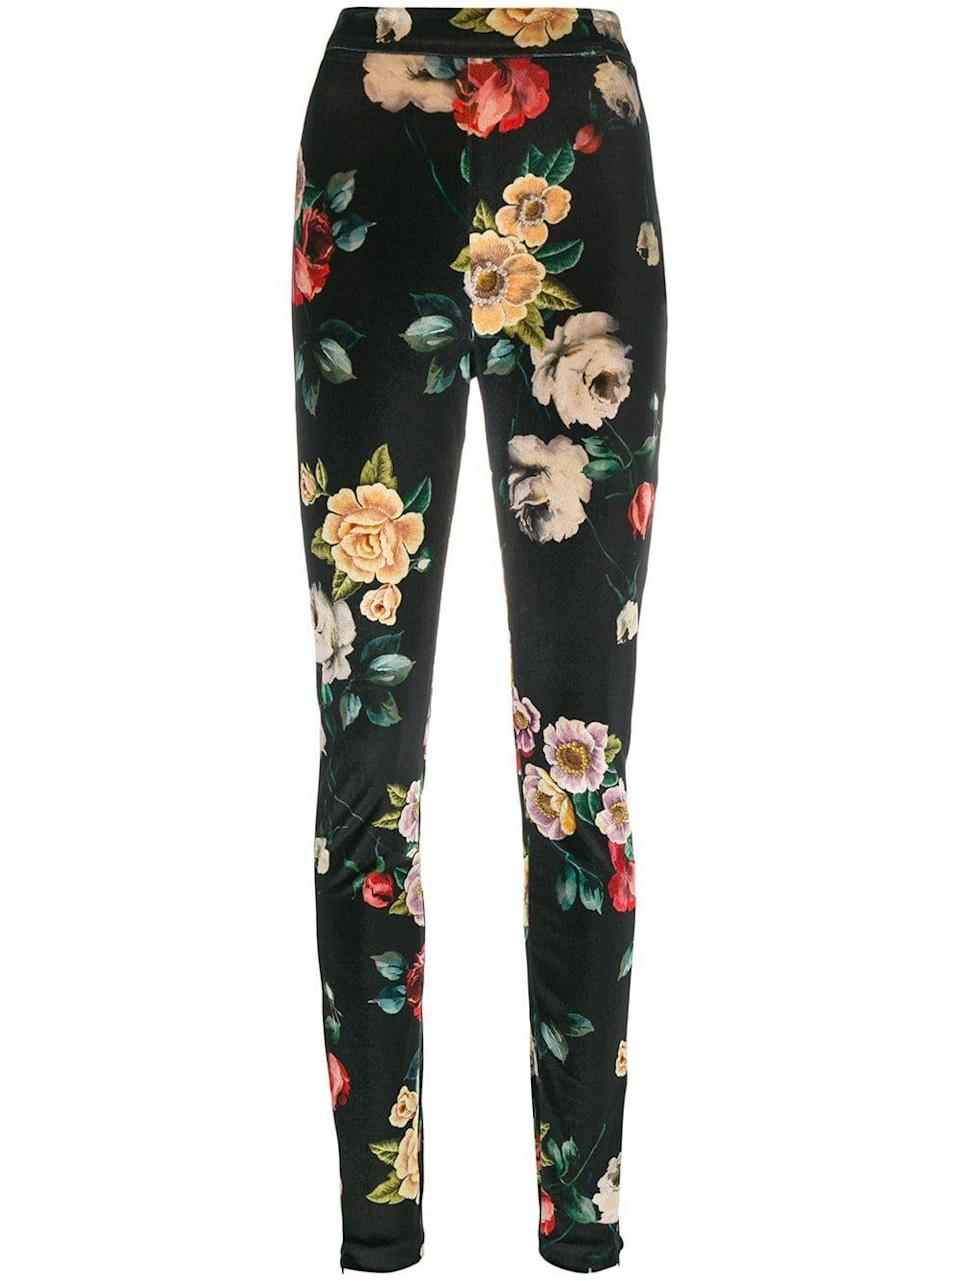 Pair it with tailored floral trousers like this perfect pair from Attico.